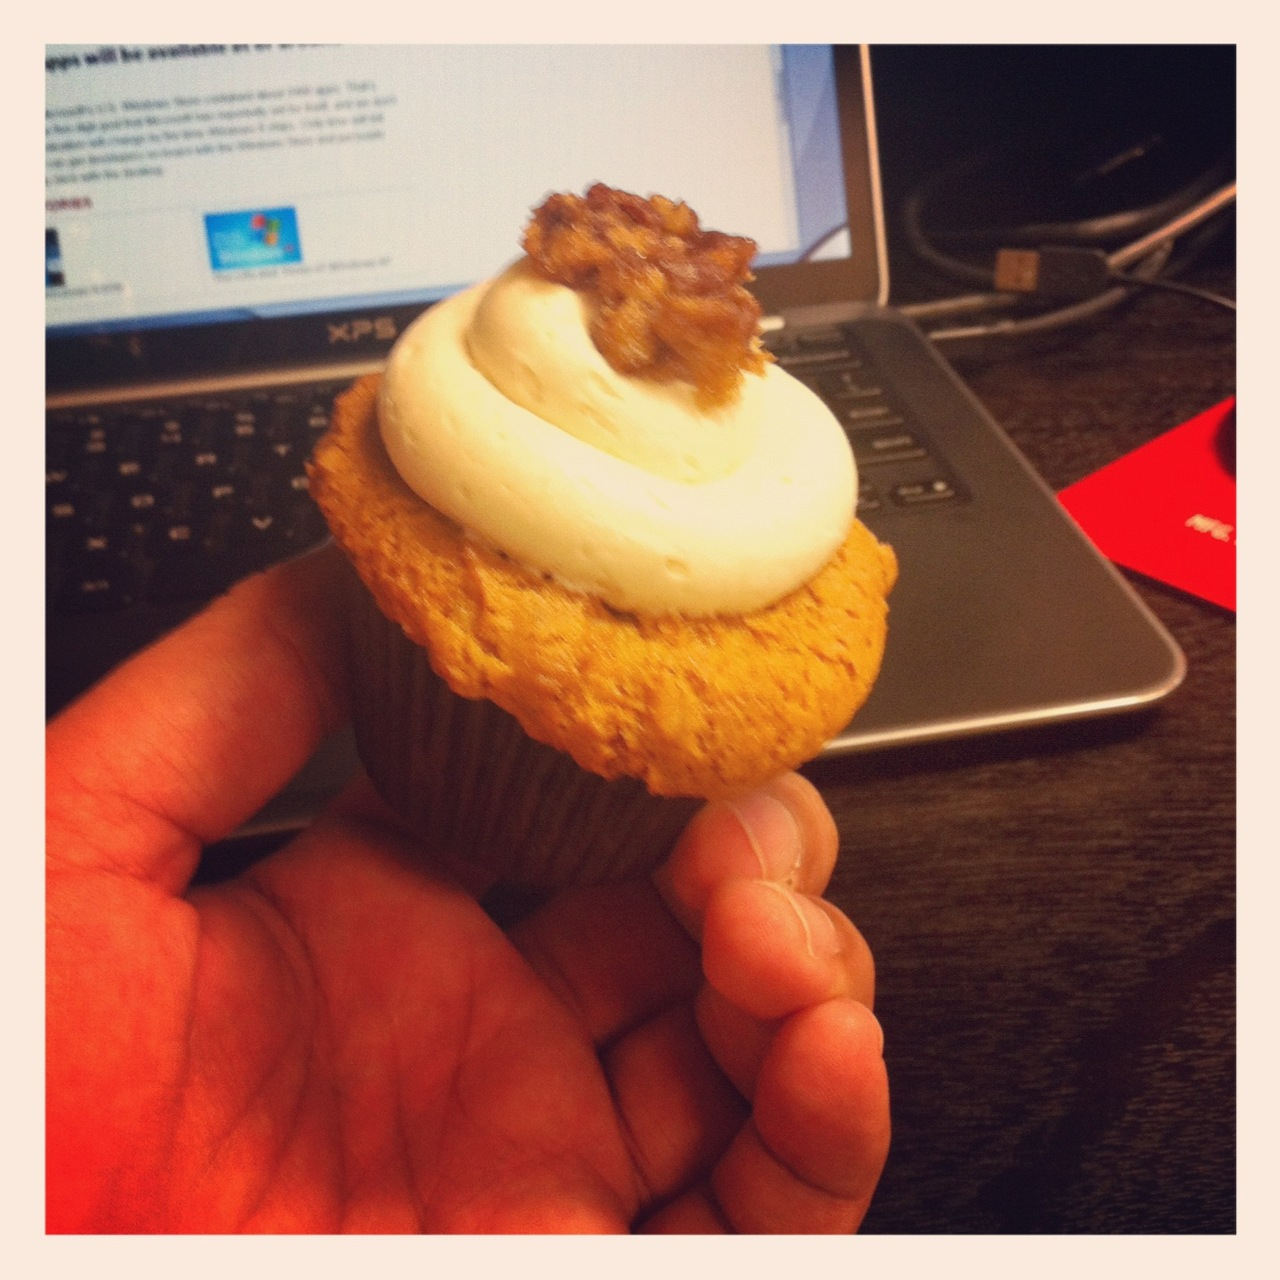 One of the nice things about working with people whom are concerned about your sweet tooth, is coming back from lunch and finding a Butter Pecan cupcake on your desk.